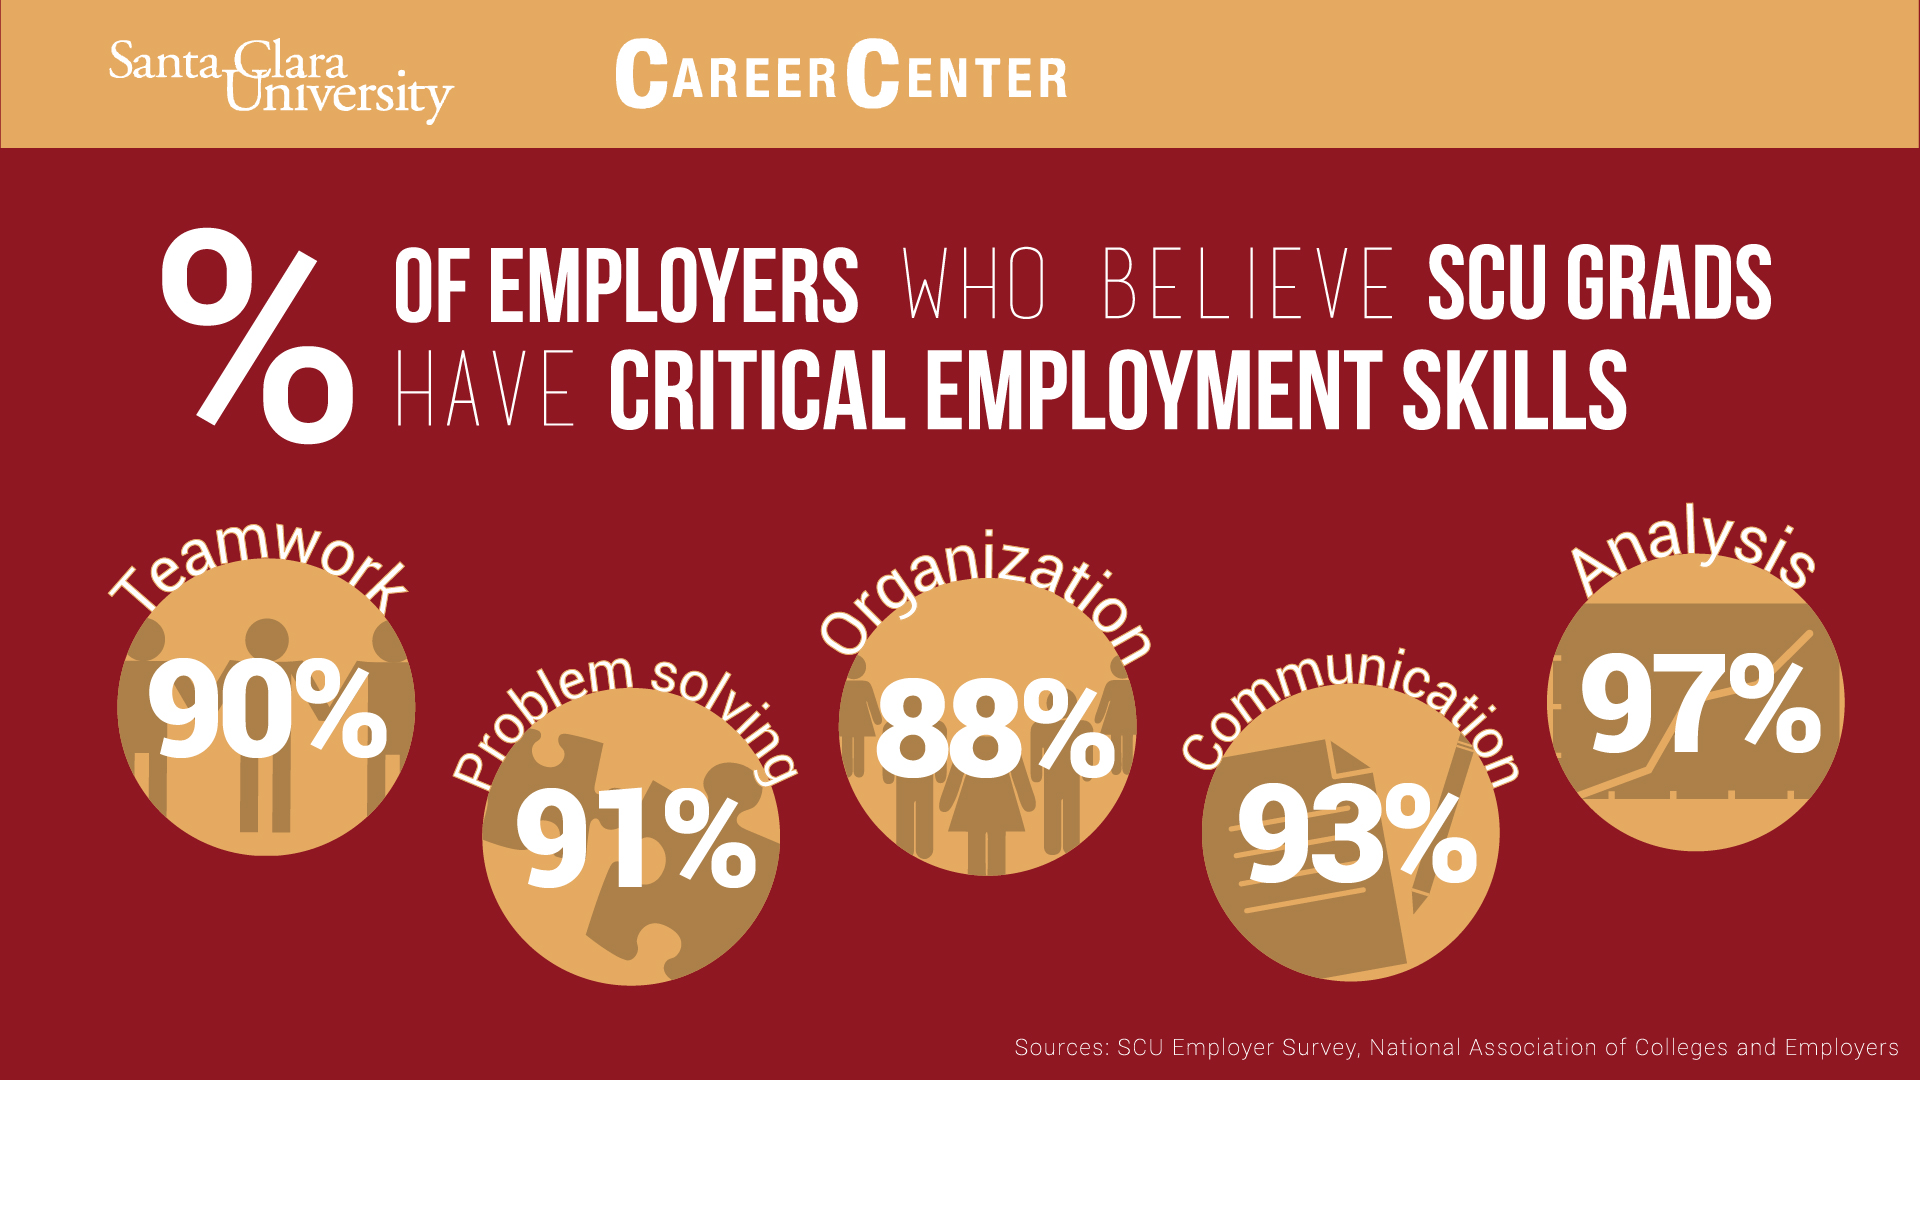 build skills experience career center santa clara university scu students demonstrate they possess critical employment skills employers seek